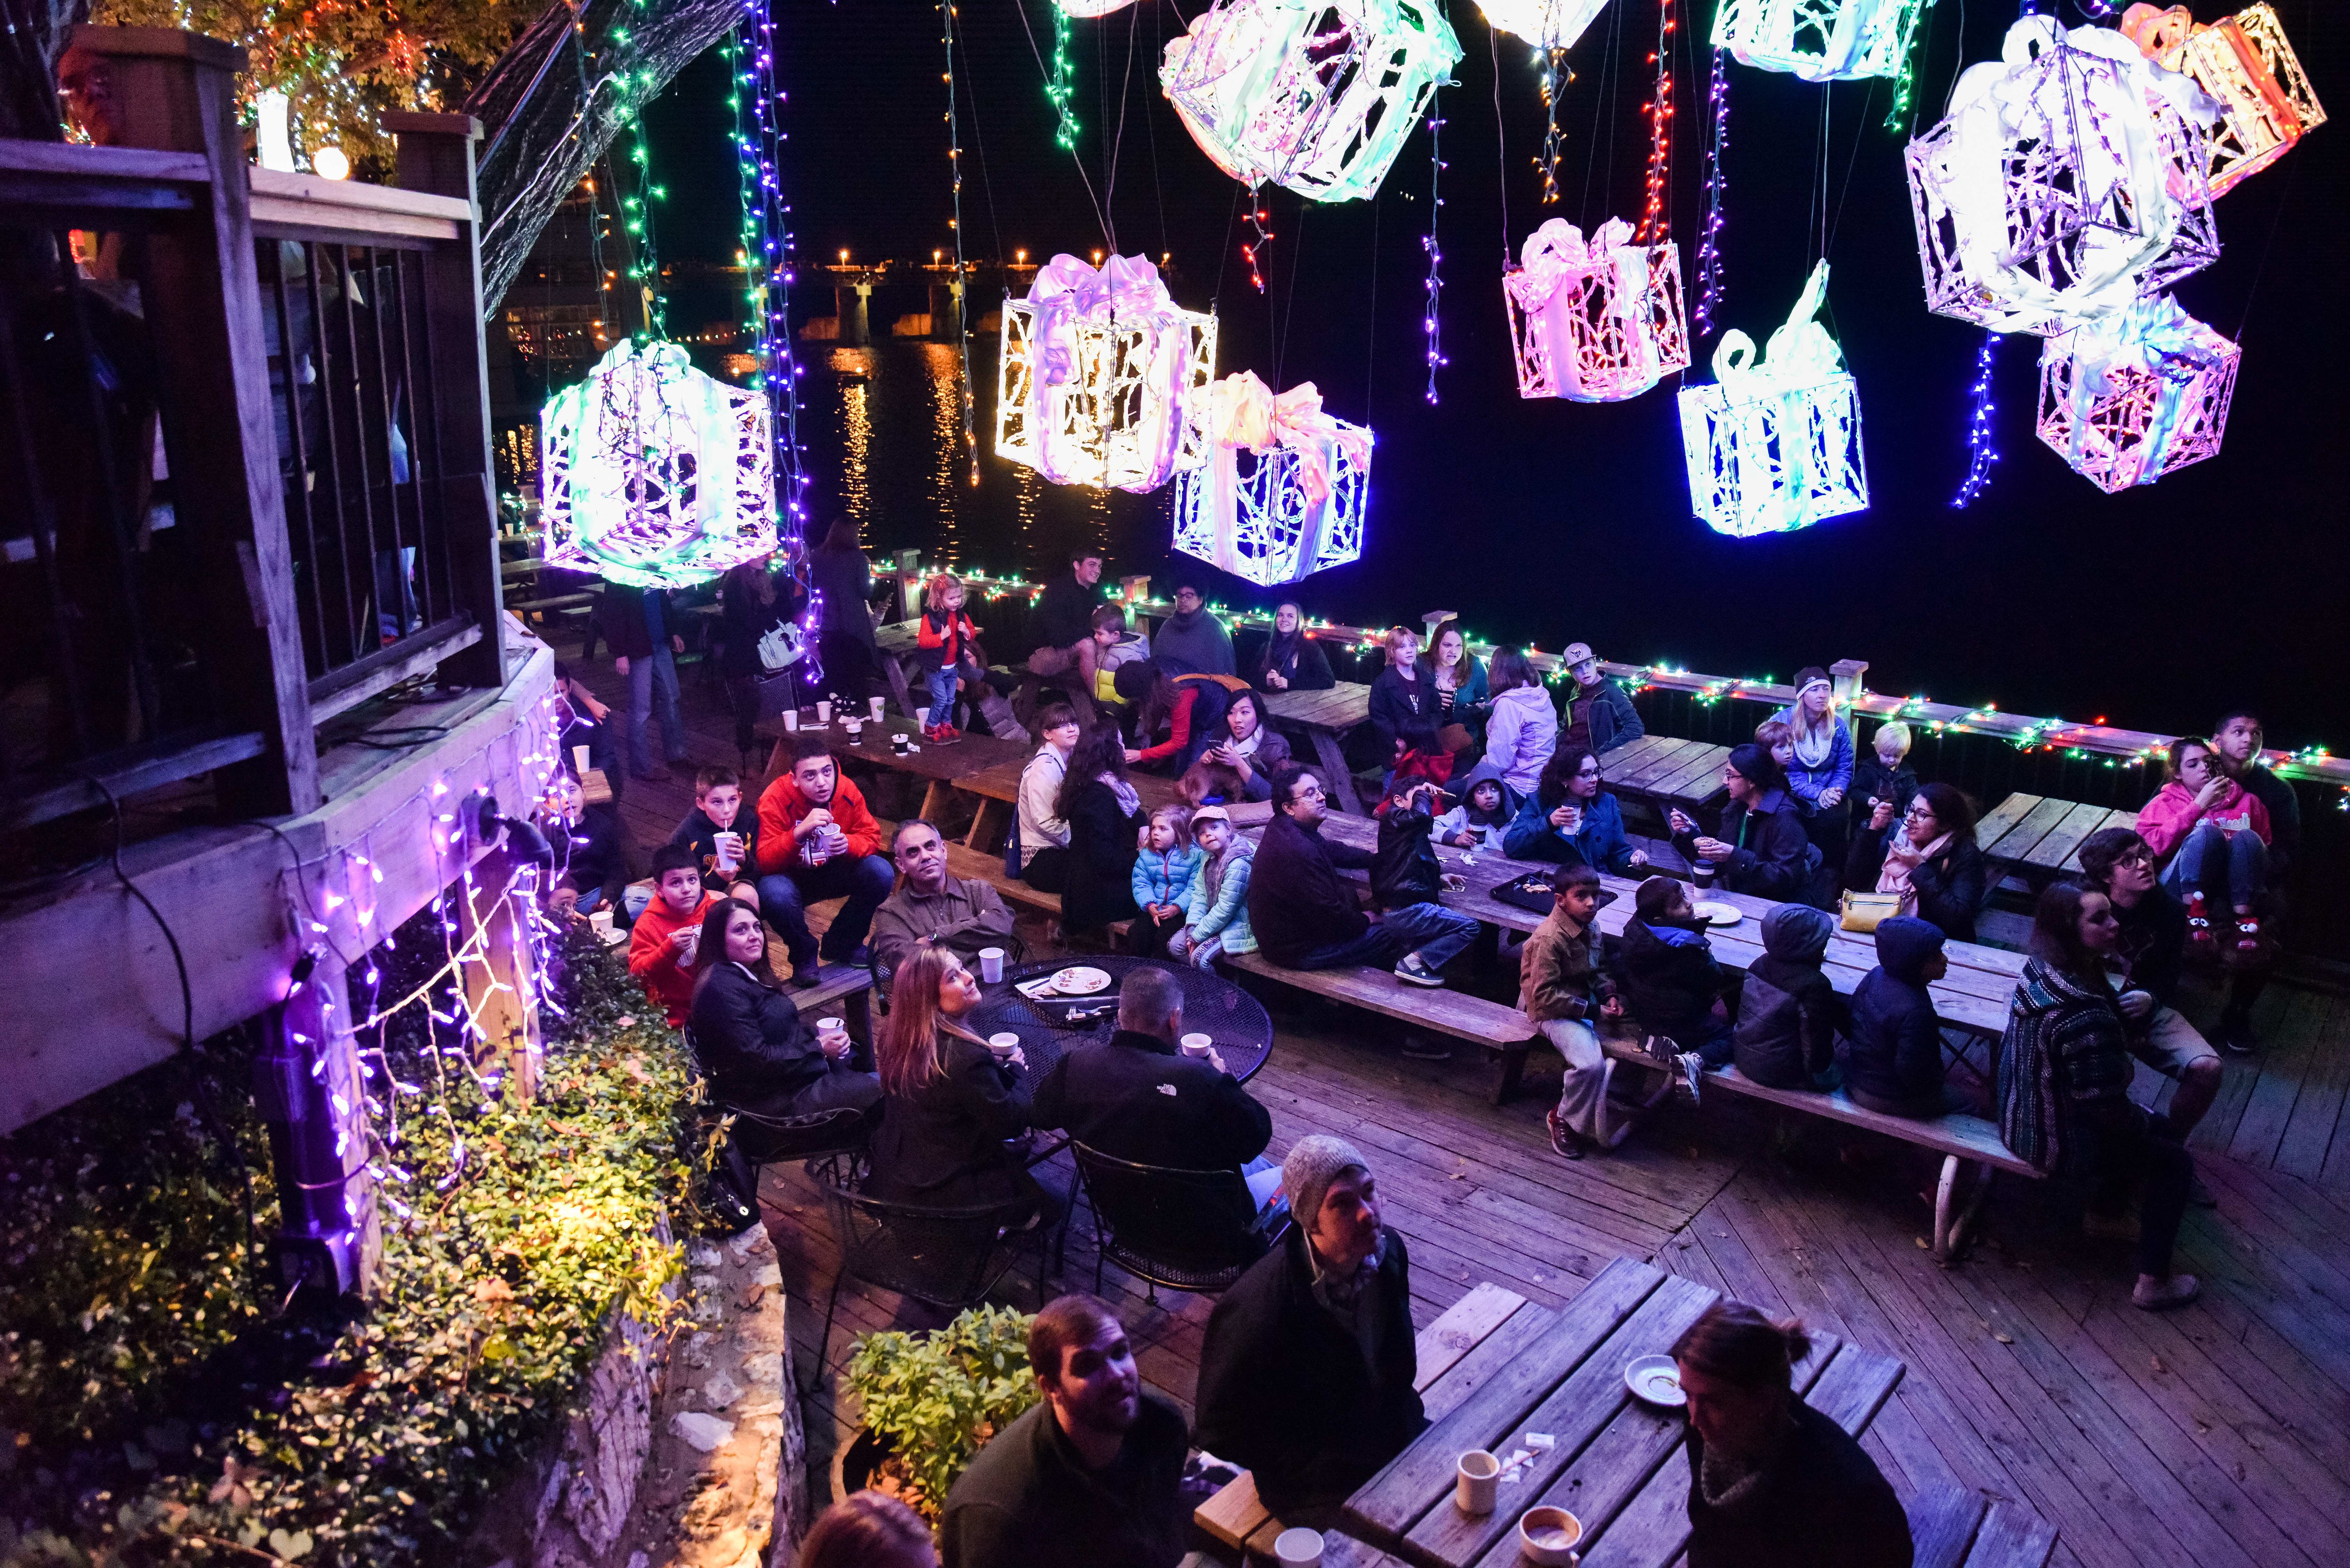 The holiday light show at Mozart's Coffee Roasters